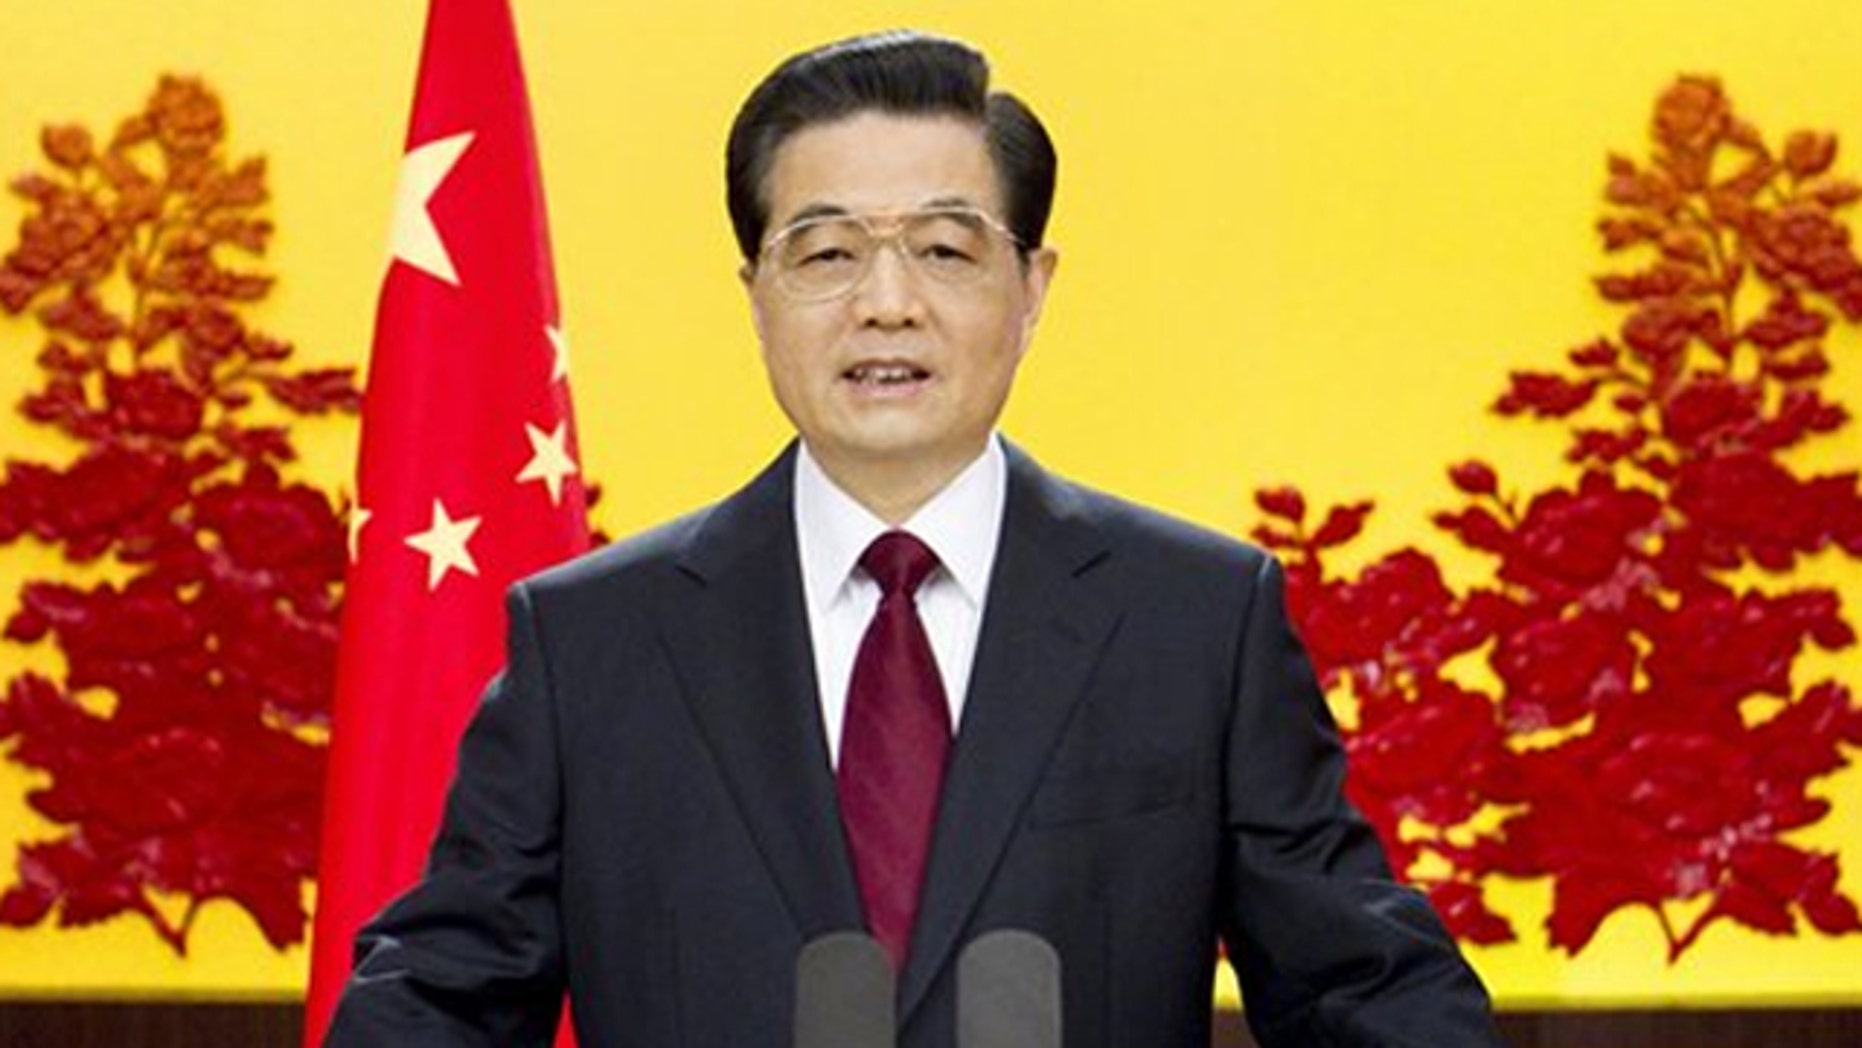 In this undated photo released on Dec. 31, 2010, by China's Xinhua News Agency, Chinese President Hu Jintao delivers a New Year address in Beijing.